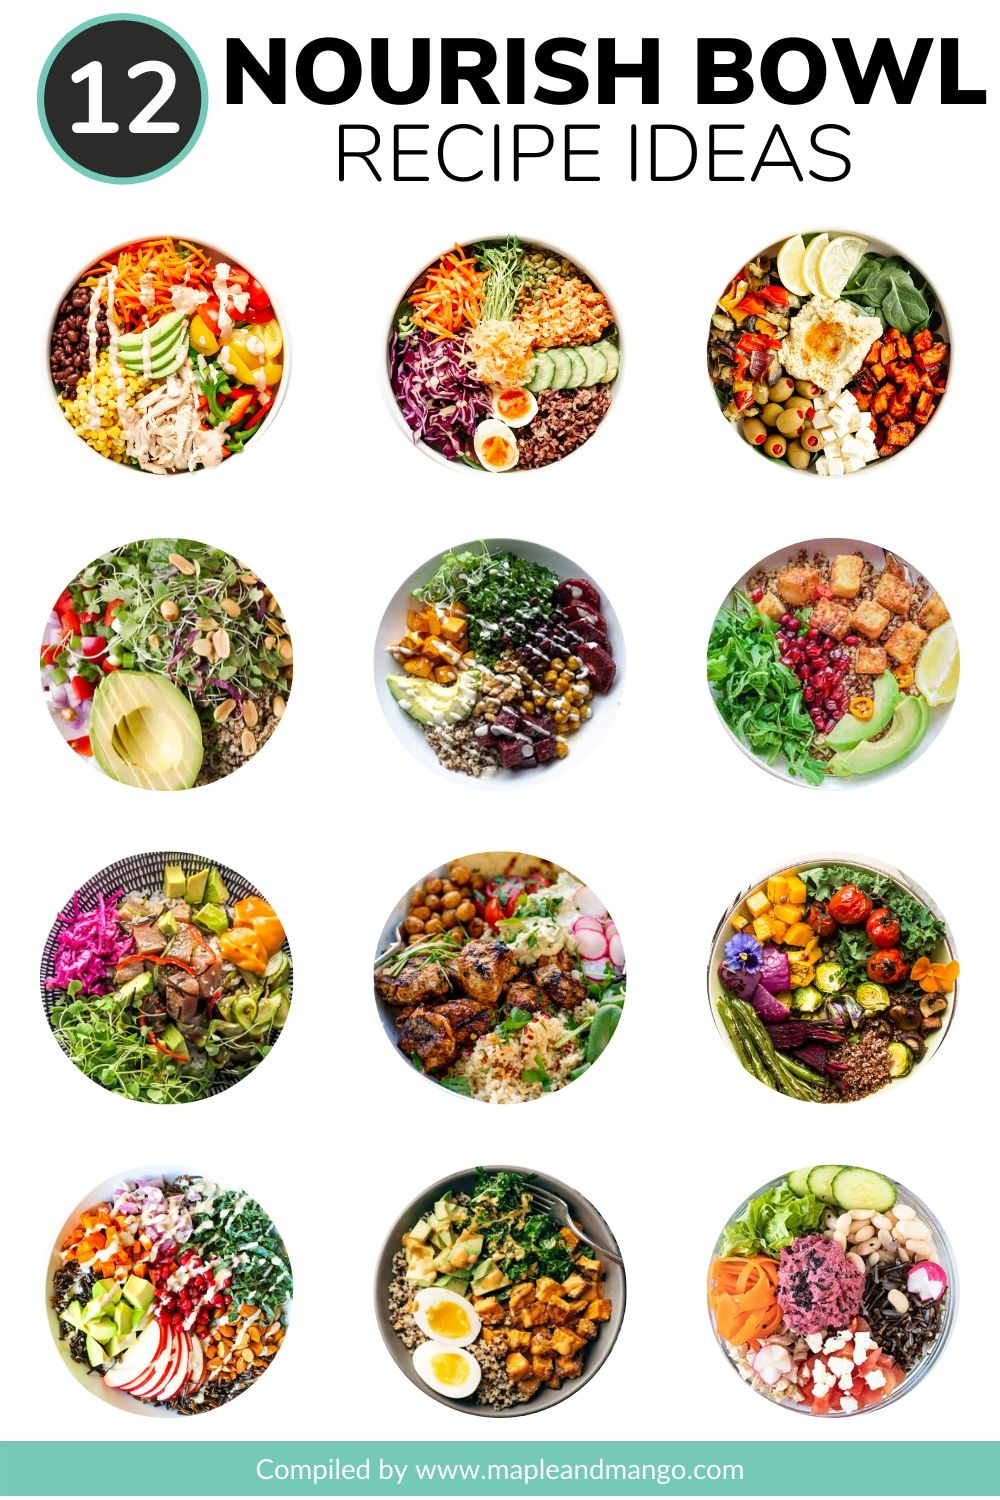 Collage of 12 different healthy nourish bowl recipe ideas.